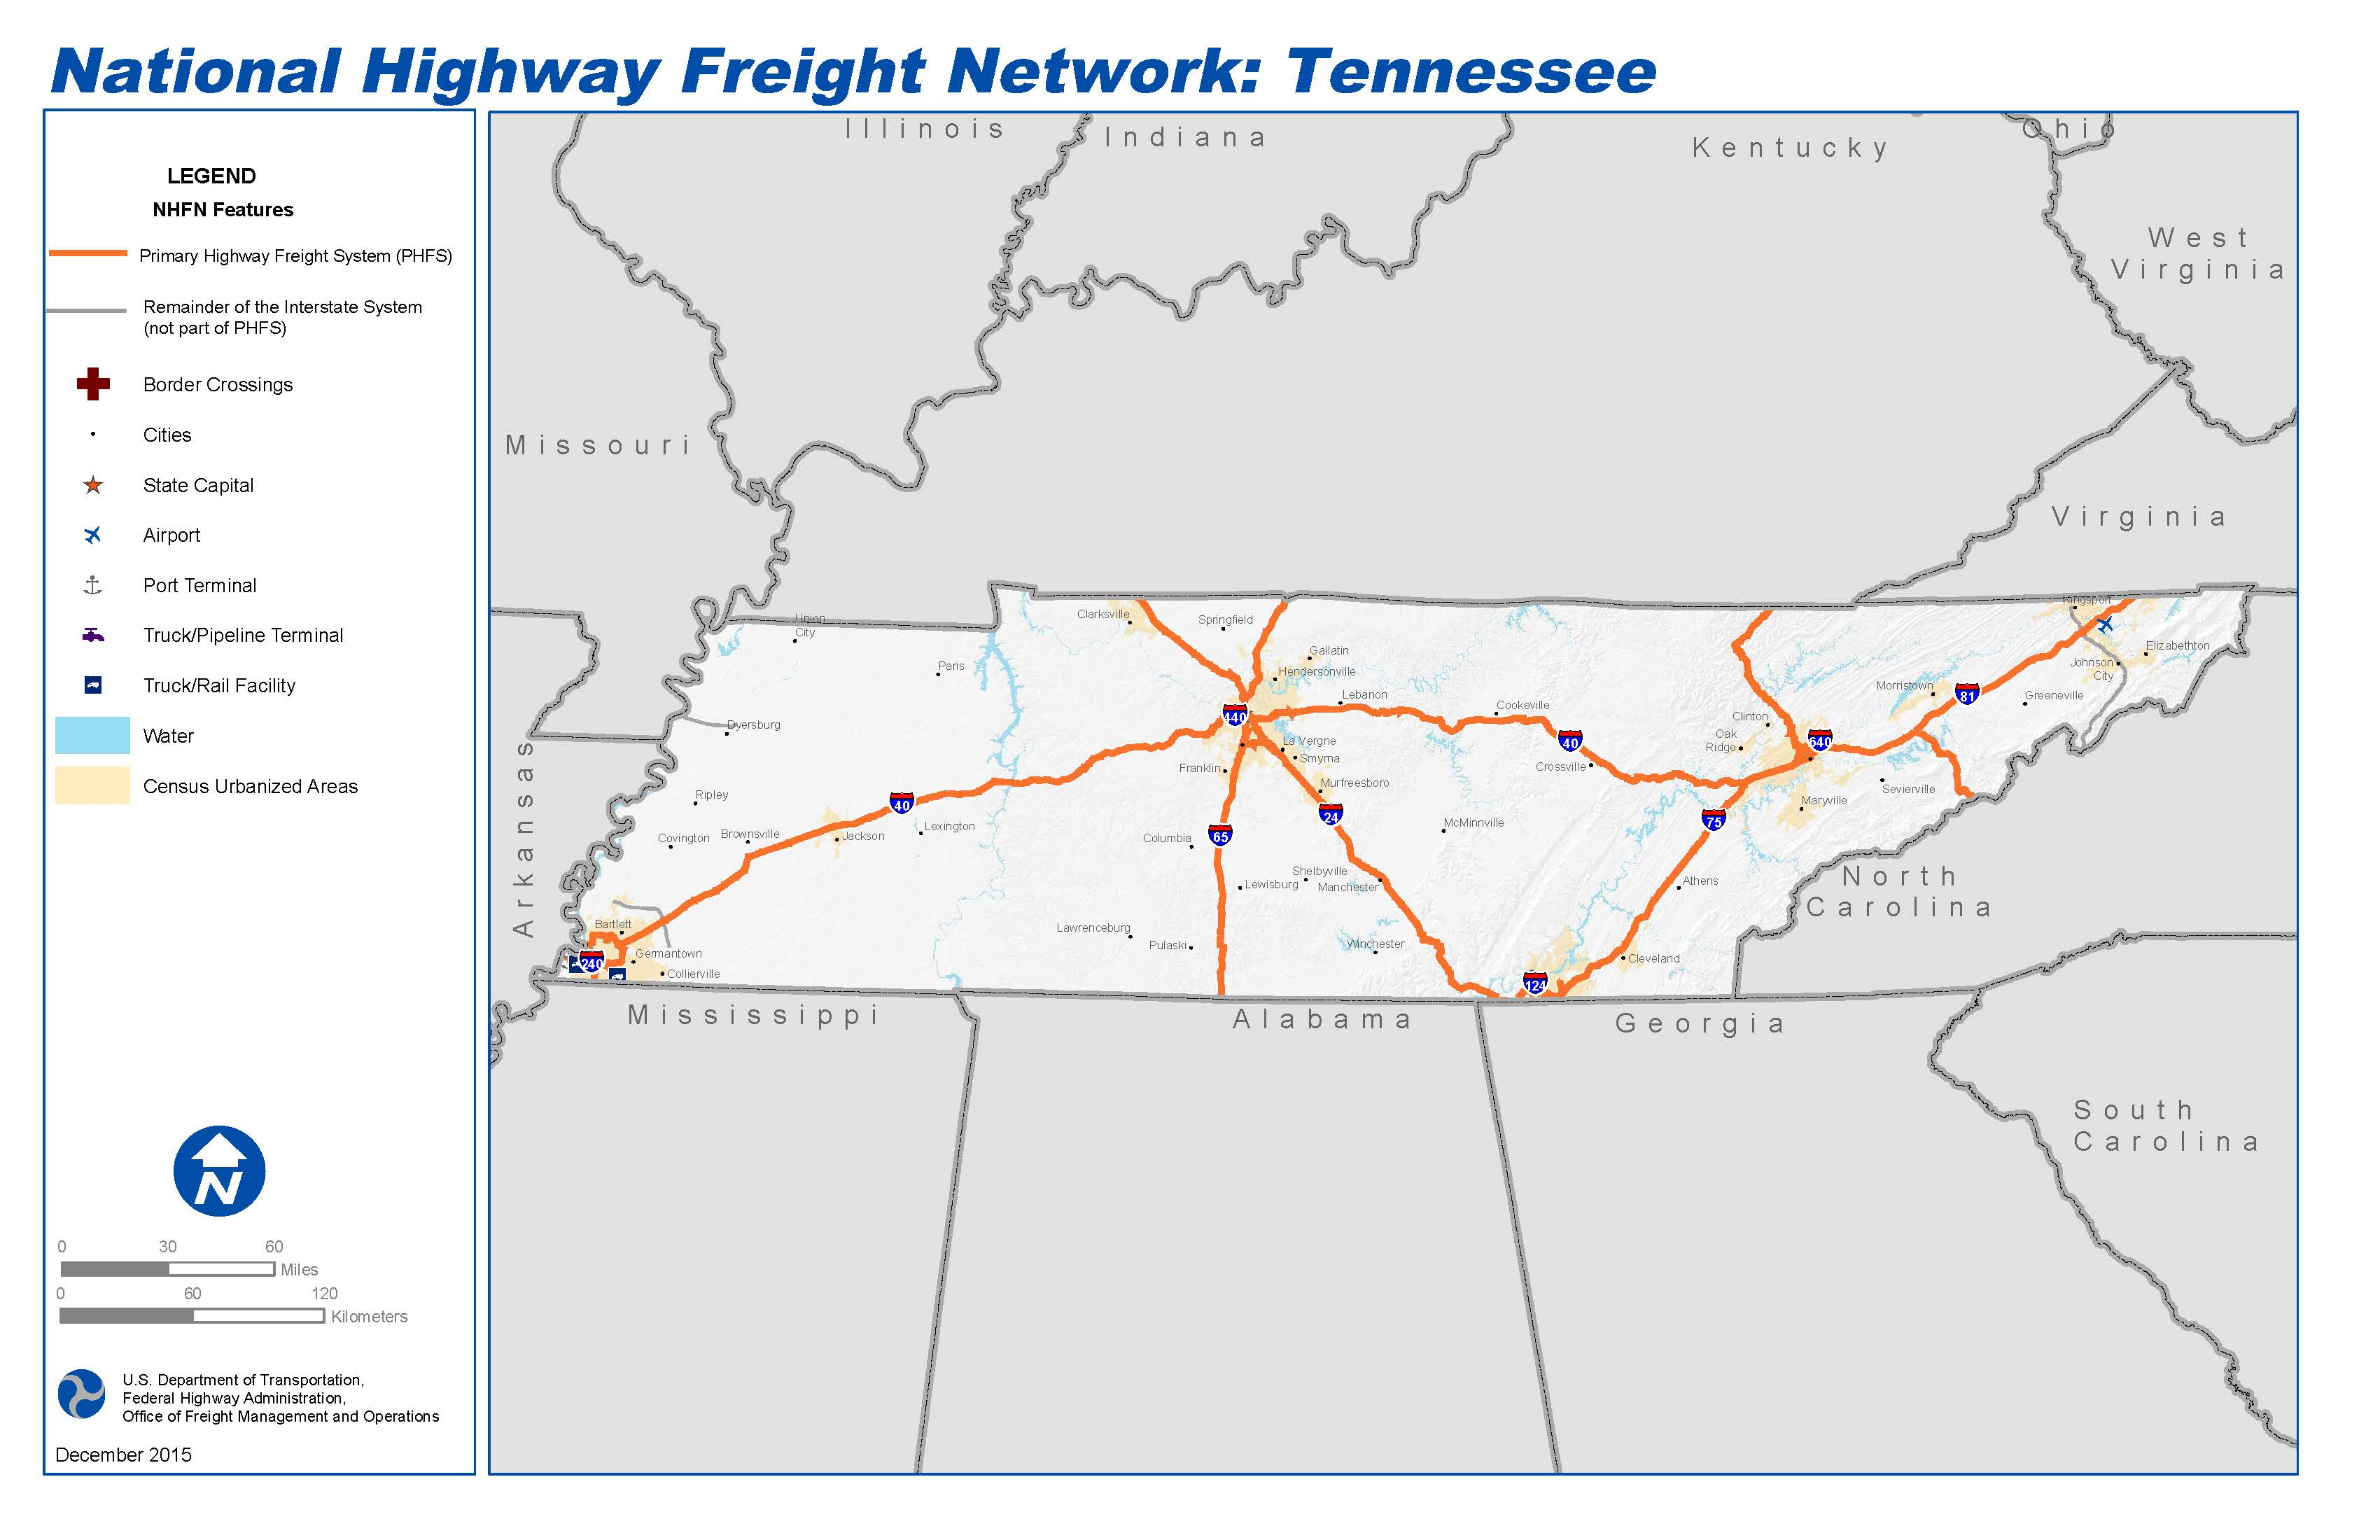 national highway freight network map and tables for tennessee